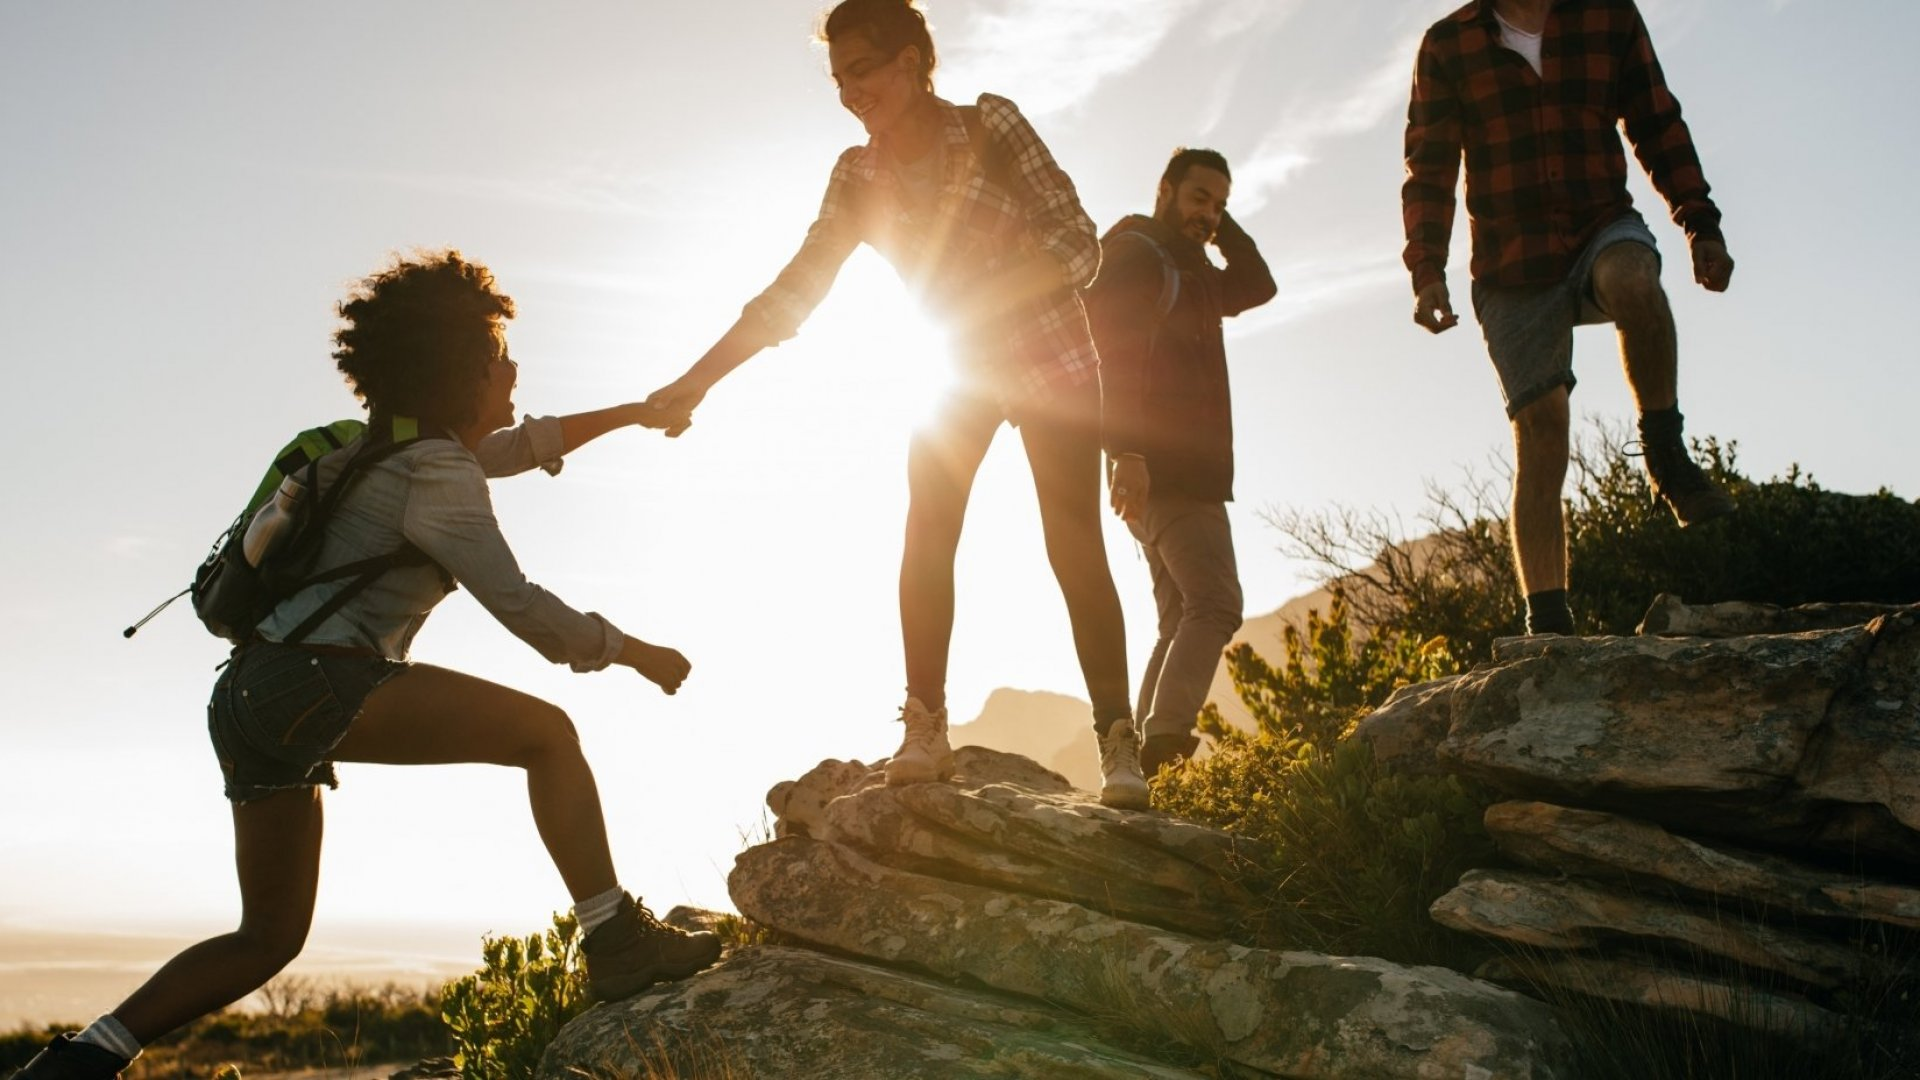 Surprising New Research Reveals That the 'Warm Glow'of Kindness Is Very Real